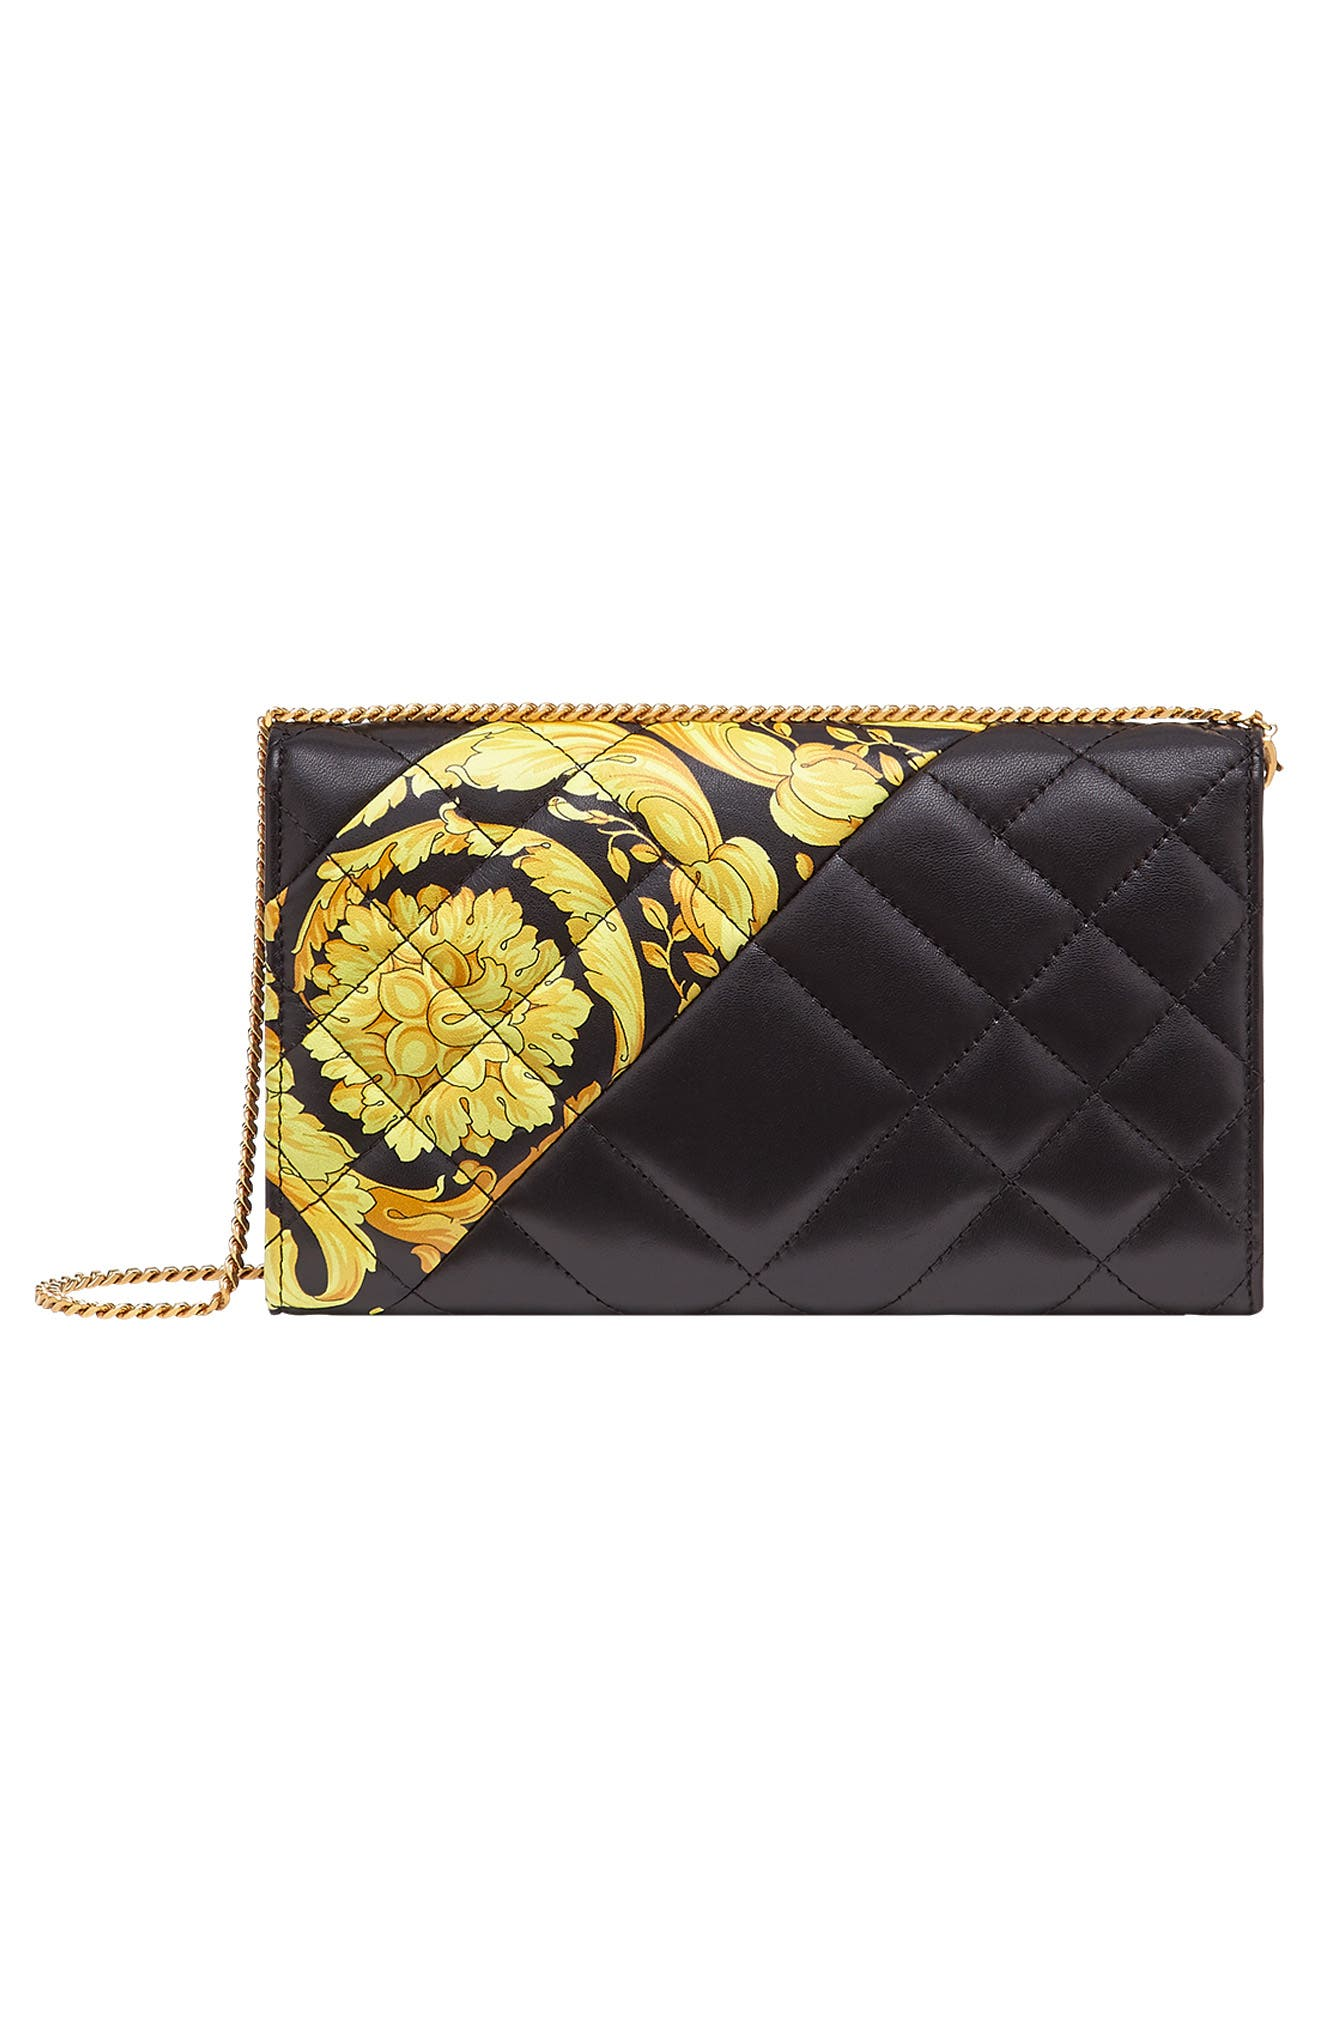 Baroque Icon Quilted Leather Crossbody Bag,                             Alternate thumbnail 3, color,                             BLACK MULTI/ TRIBUTE GOLD